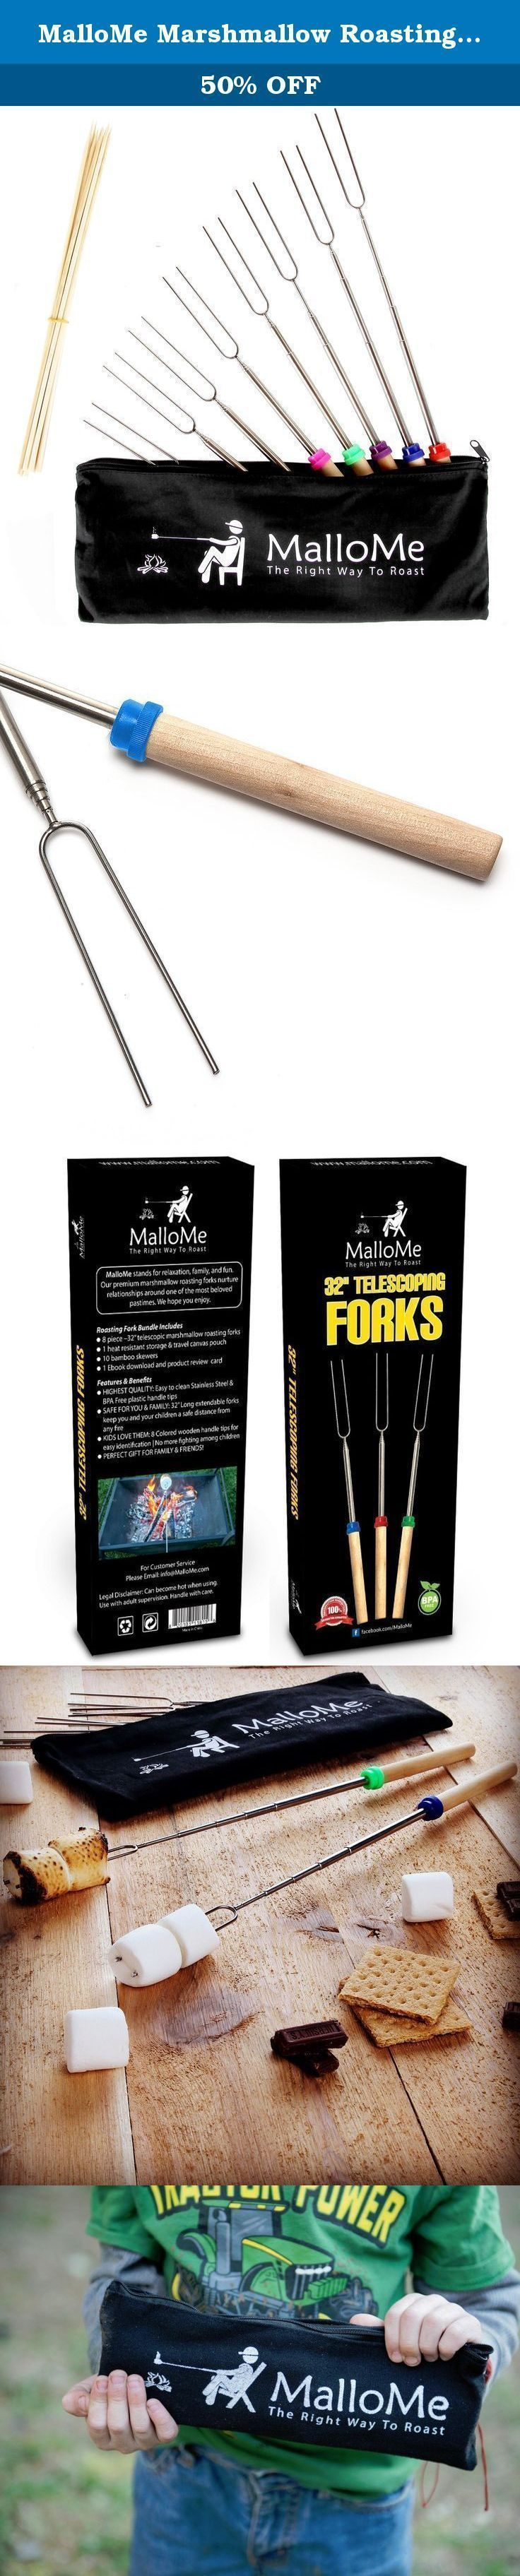 MalloMe Marshmallow Roasting Sticks Set of 8 Telescoping Smores Skewers & Hot Dog Forks 32 Inch Patio Fire Pit Accessories Camping Cookware Campfire Cooking Kids Fireplace Accesories - FREE Canvas Pouch, 10 Bamboo Sticks & Marshmallow Sticks Ebook. THROW AWAY THOSE SHORT & CLUNKY 22 INCH ROASTING STICKS & GET YOUR FIRE PIT READY! THE BEST MARSHMALLOW ROASTING FORKS ARE FINALLY HERE MalloMe Marshmallow Roasting Sticks | 32 Telescoping Fork 8 Piece Set Relax & Roast with Family & Friends now!... #marshmallowsticks